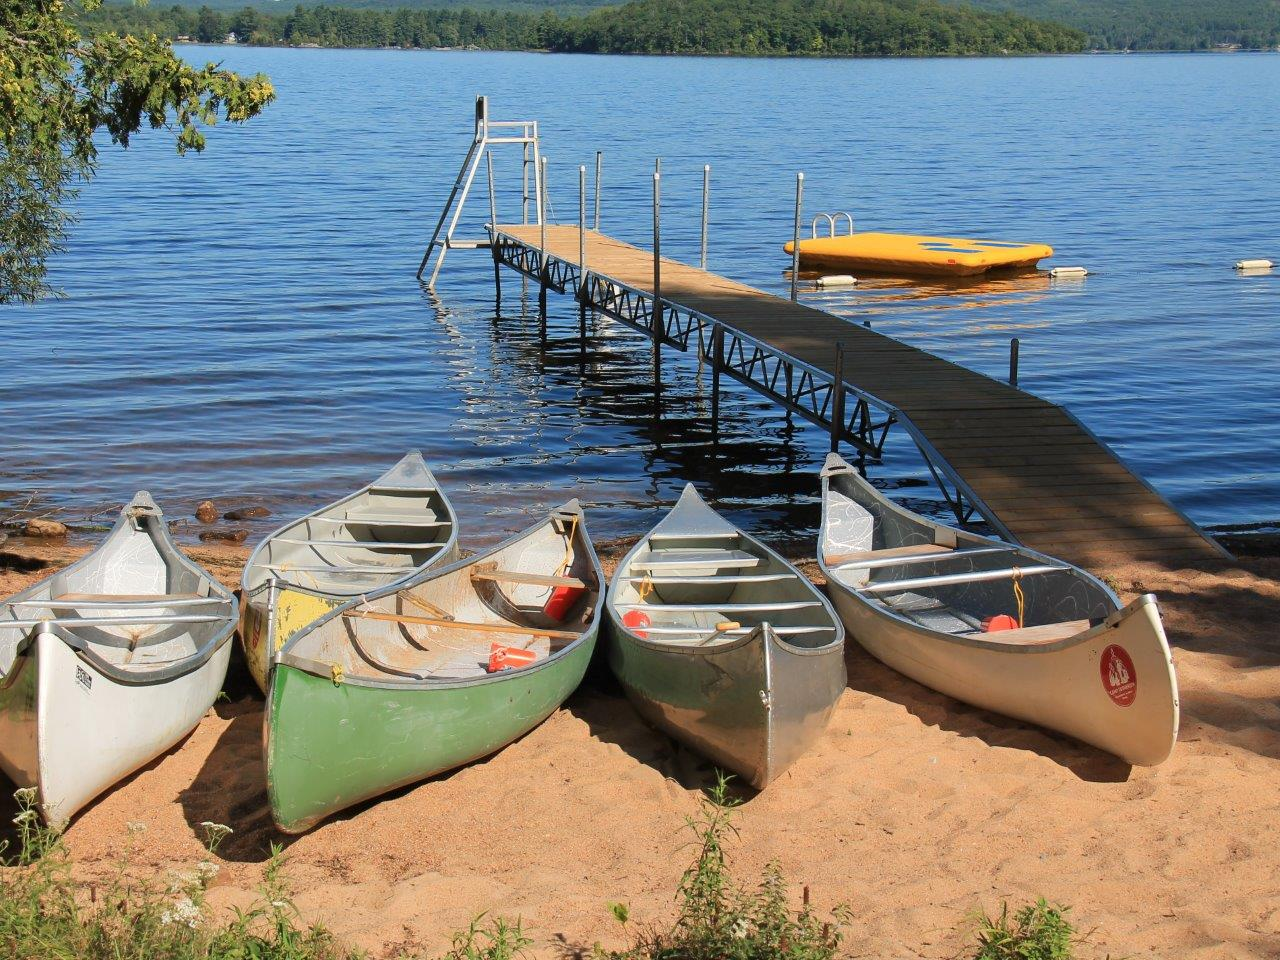 Camp Lutherlyn dock and canoes